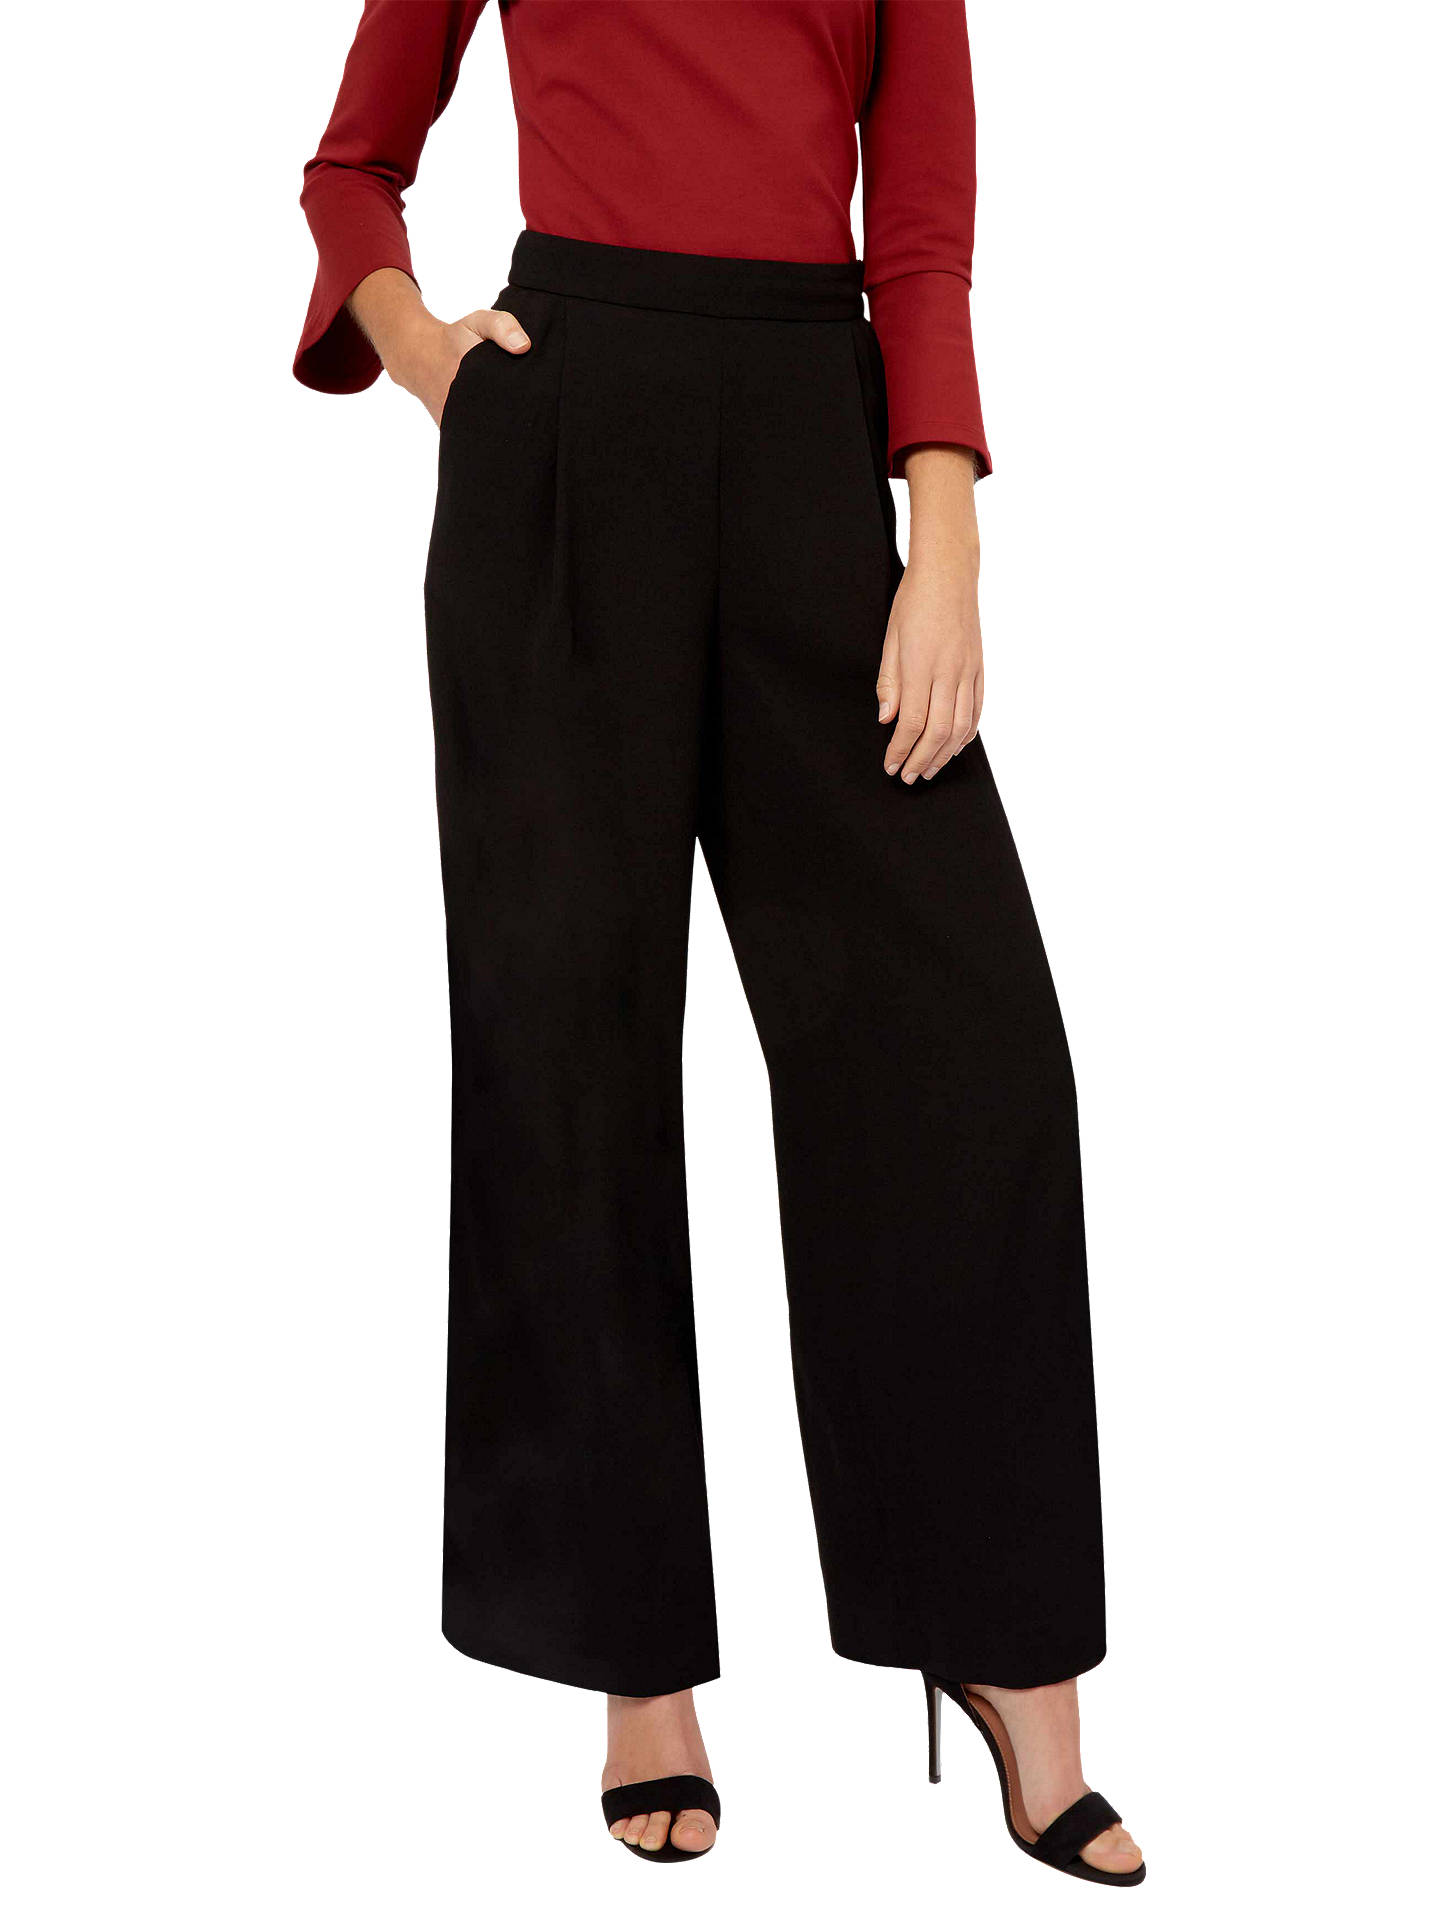 BuyJaeger Wide Leg Crepe Trousers, Black, 6 Online at johnlewis.com